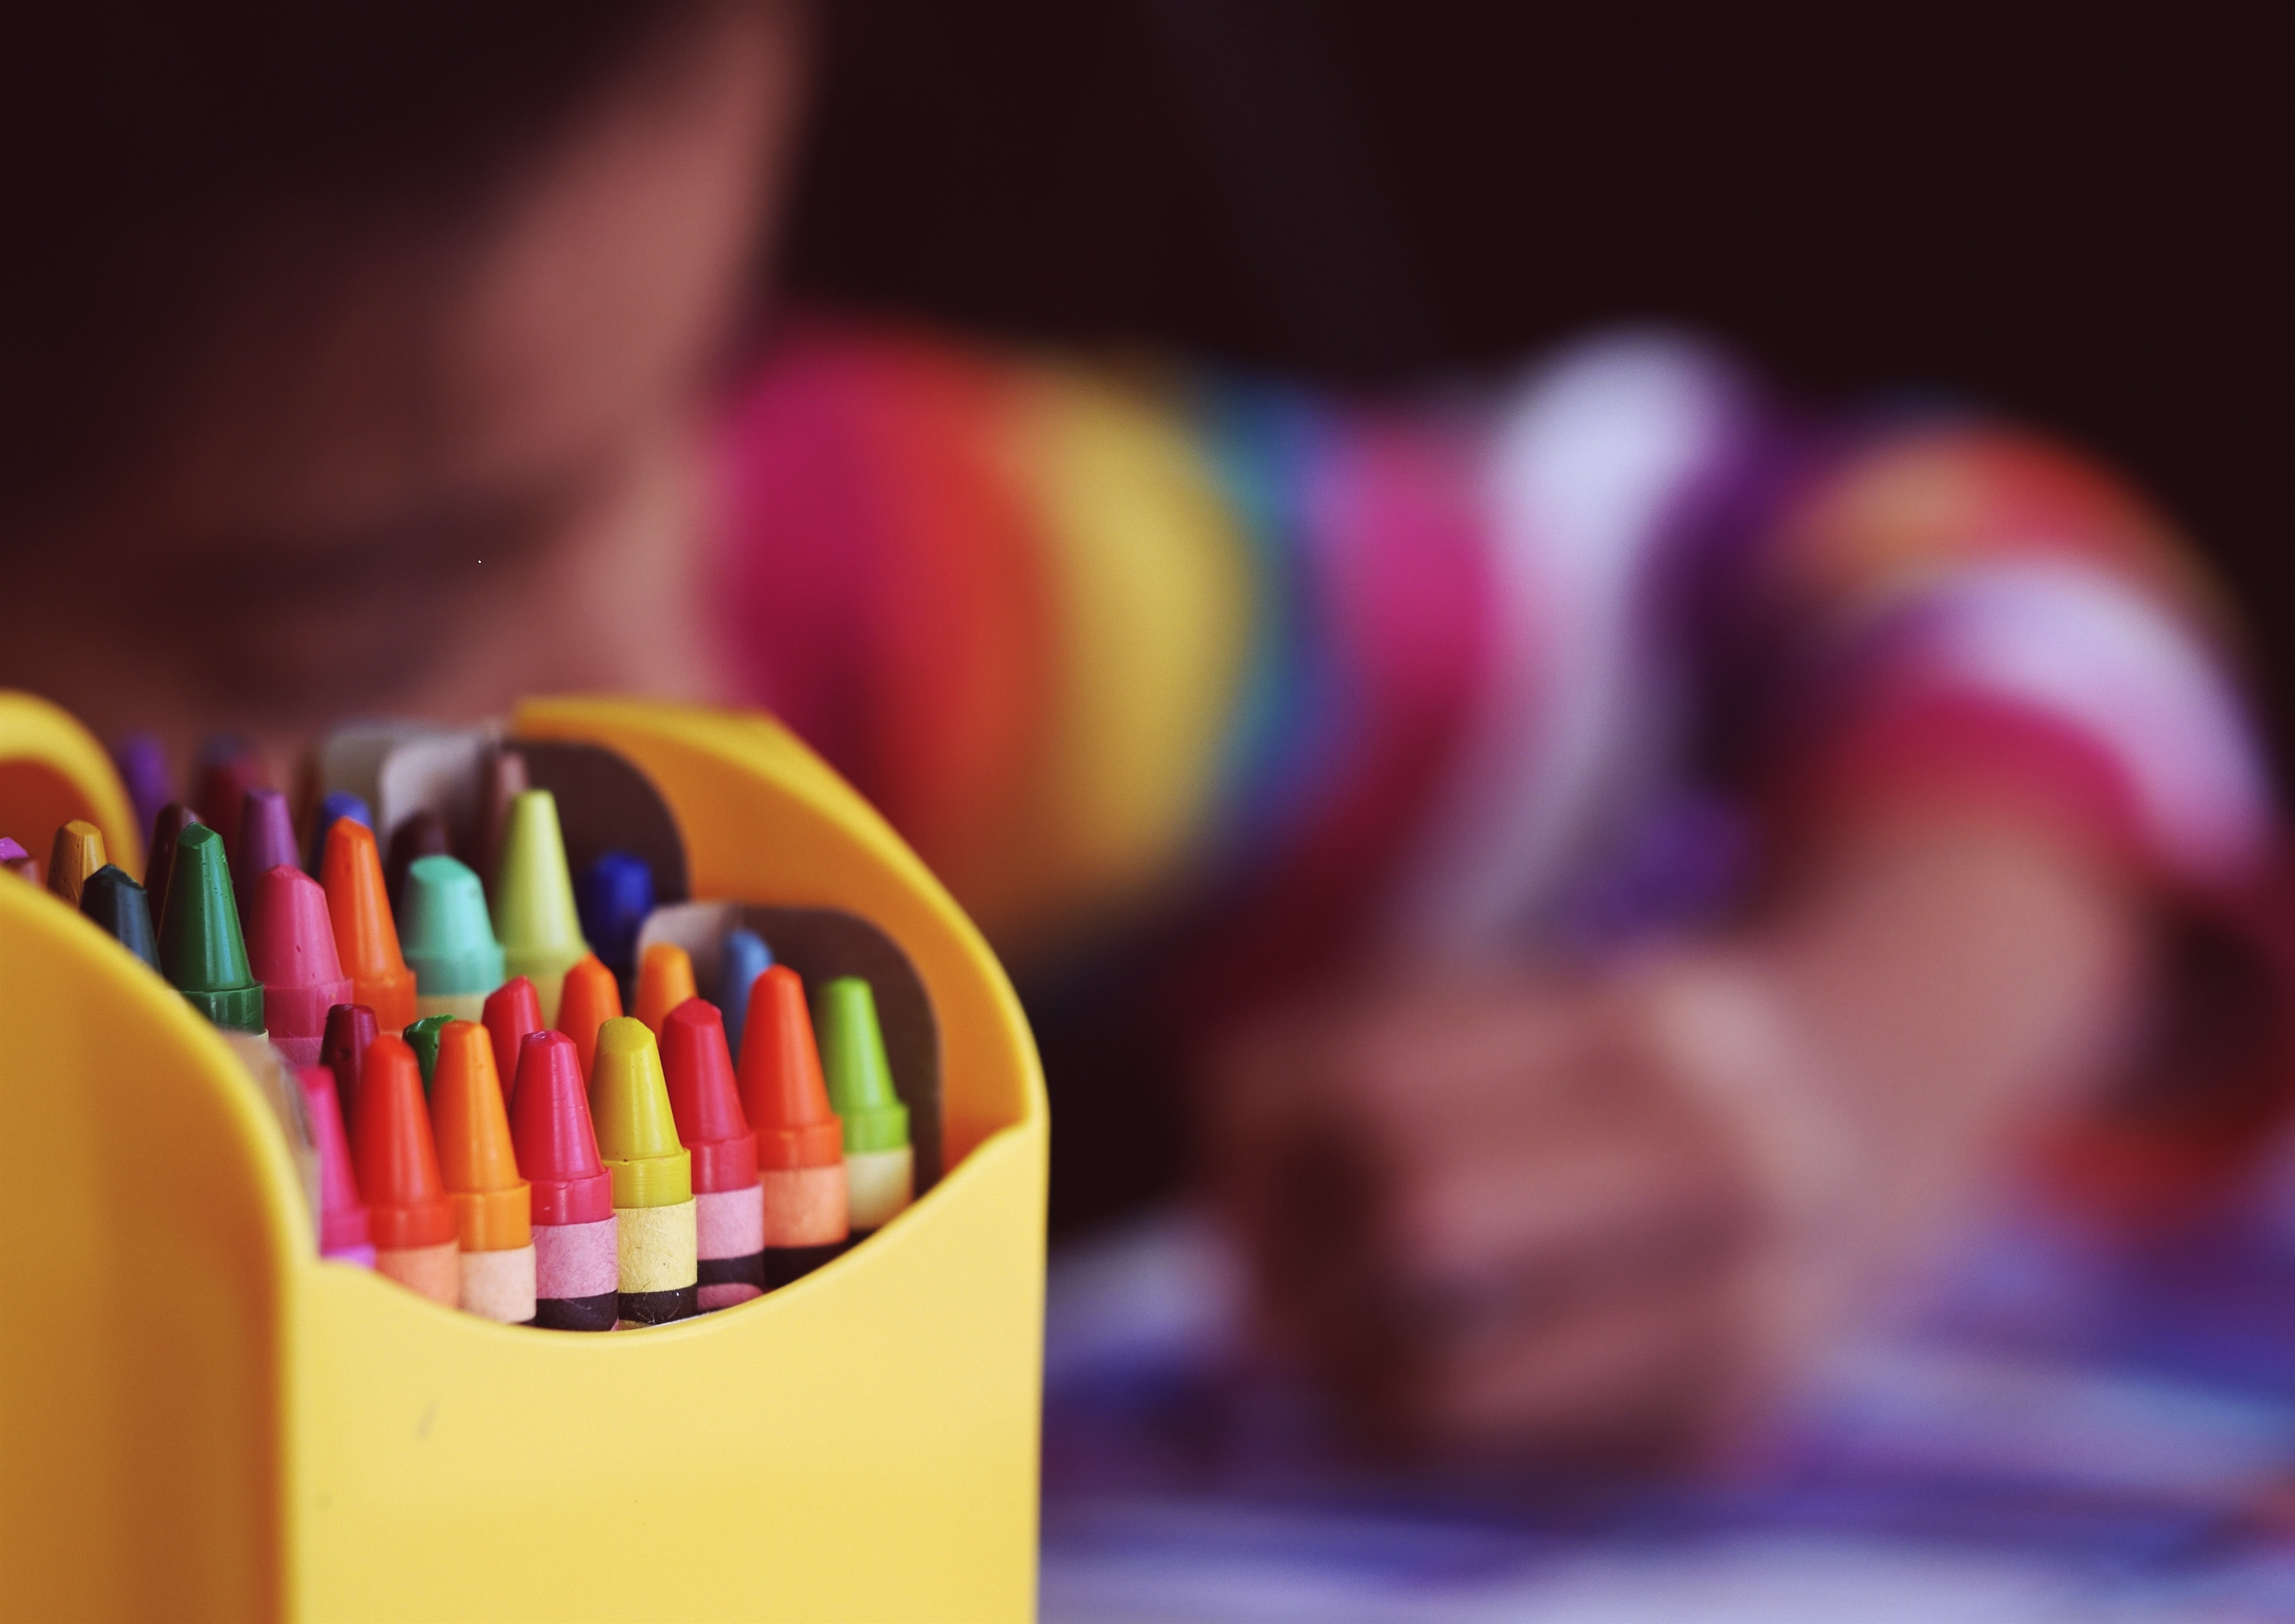 A child, wearing a colorful shirt, uses crayons to color a picture.